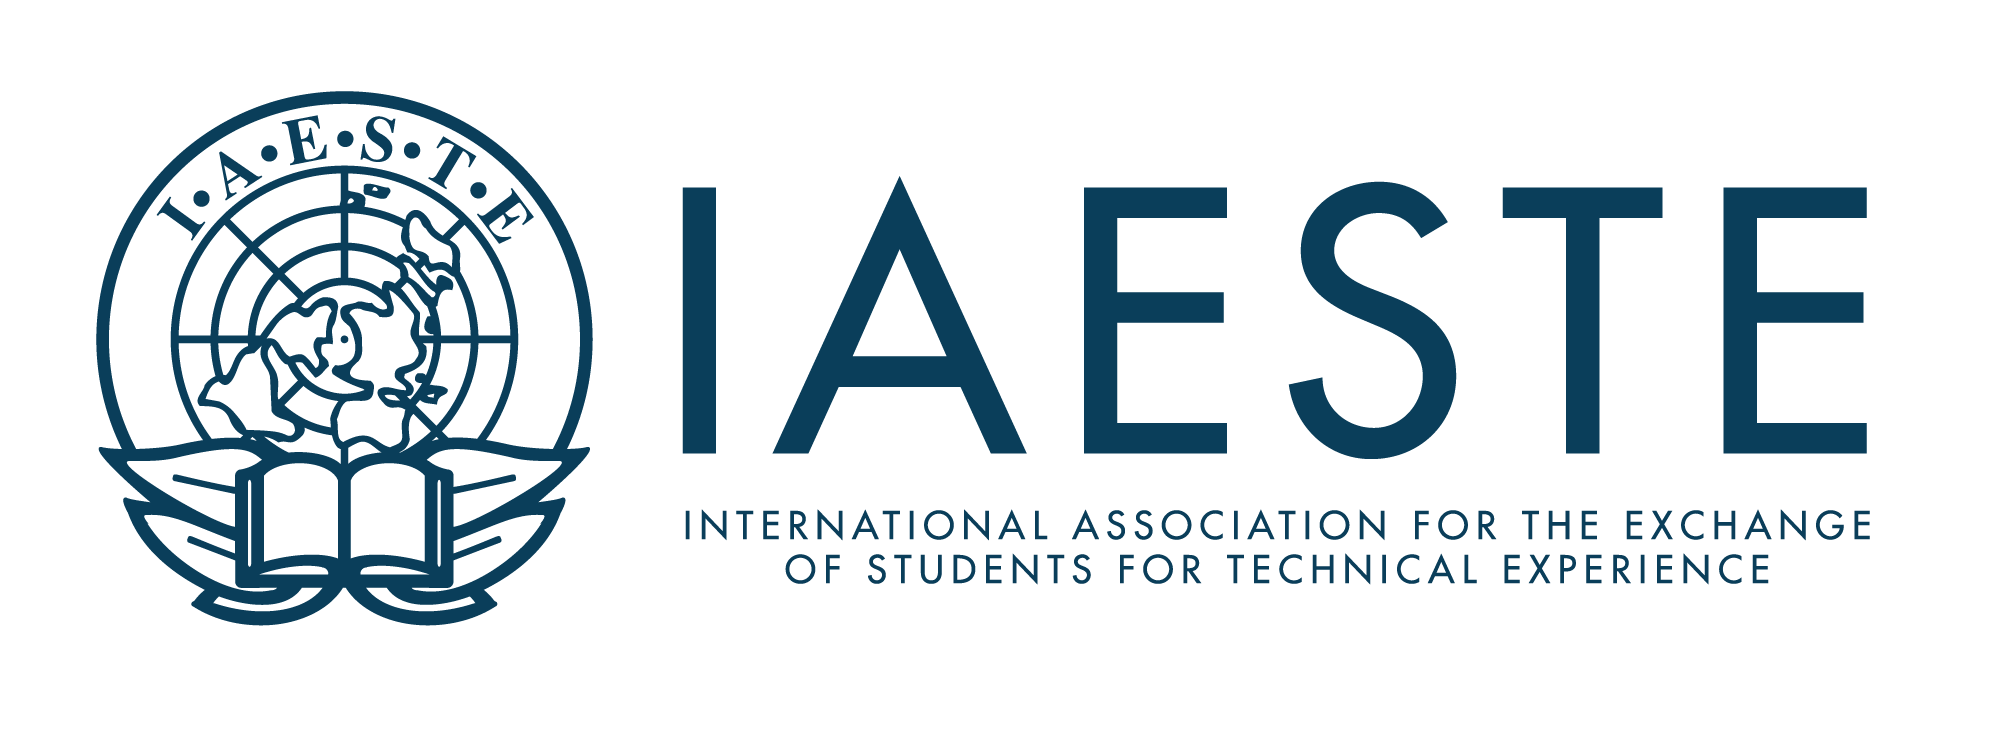 logo for International Association for the Exchange of Students for Technical Experience